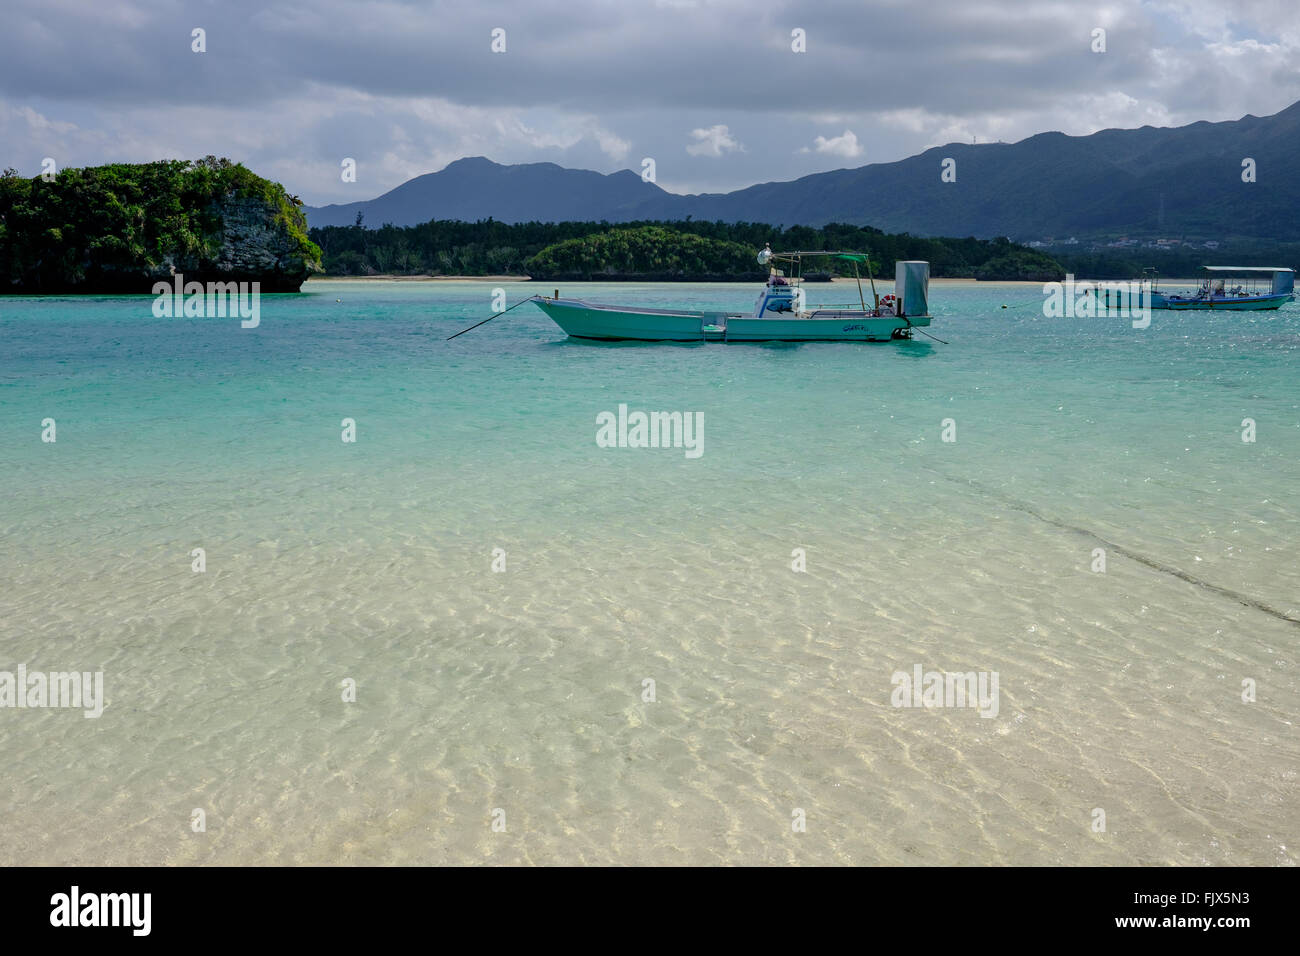 Boats Moored On Sea At Ishigaki - Stock Image